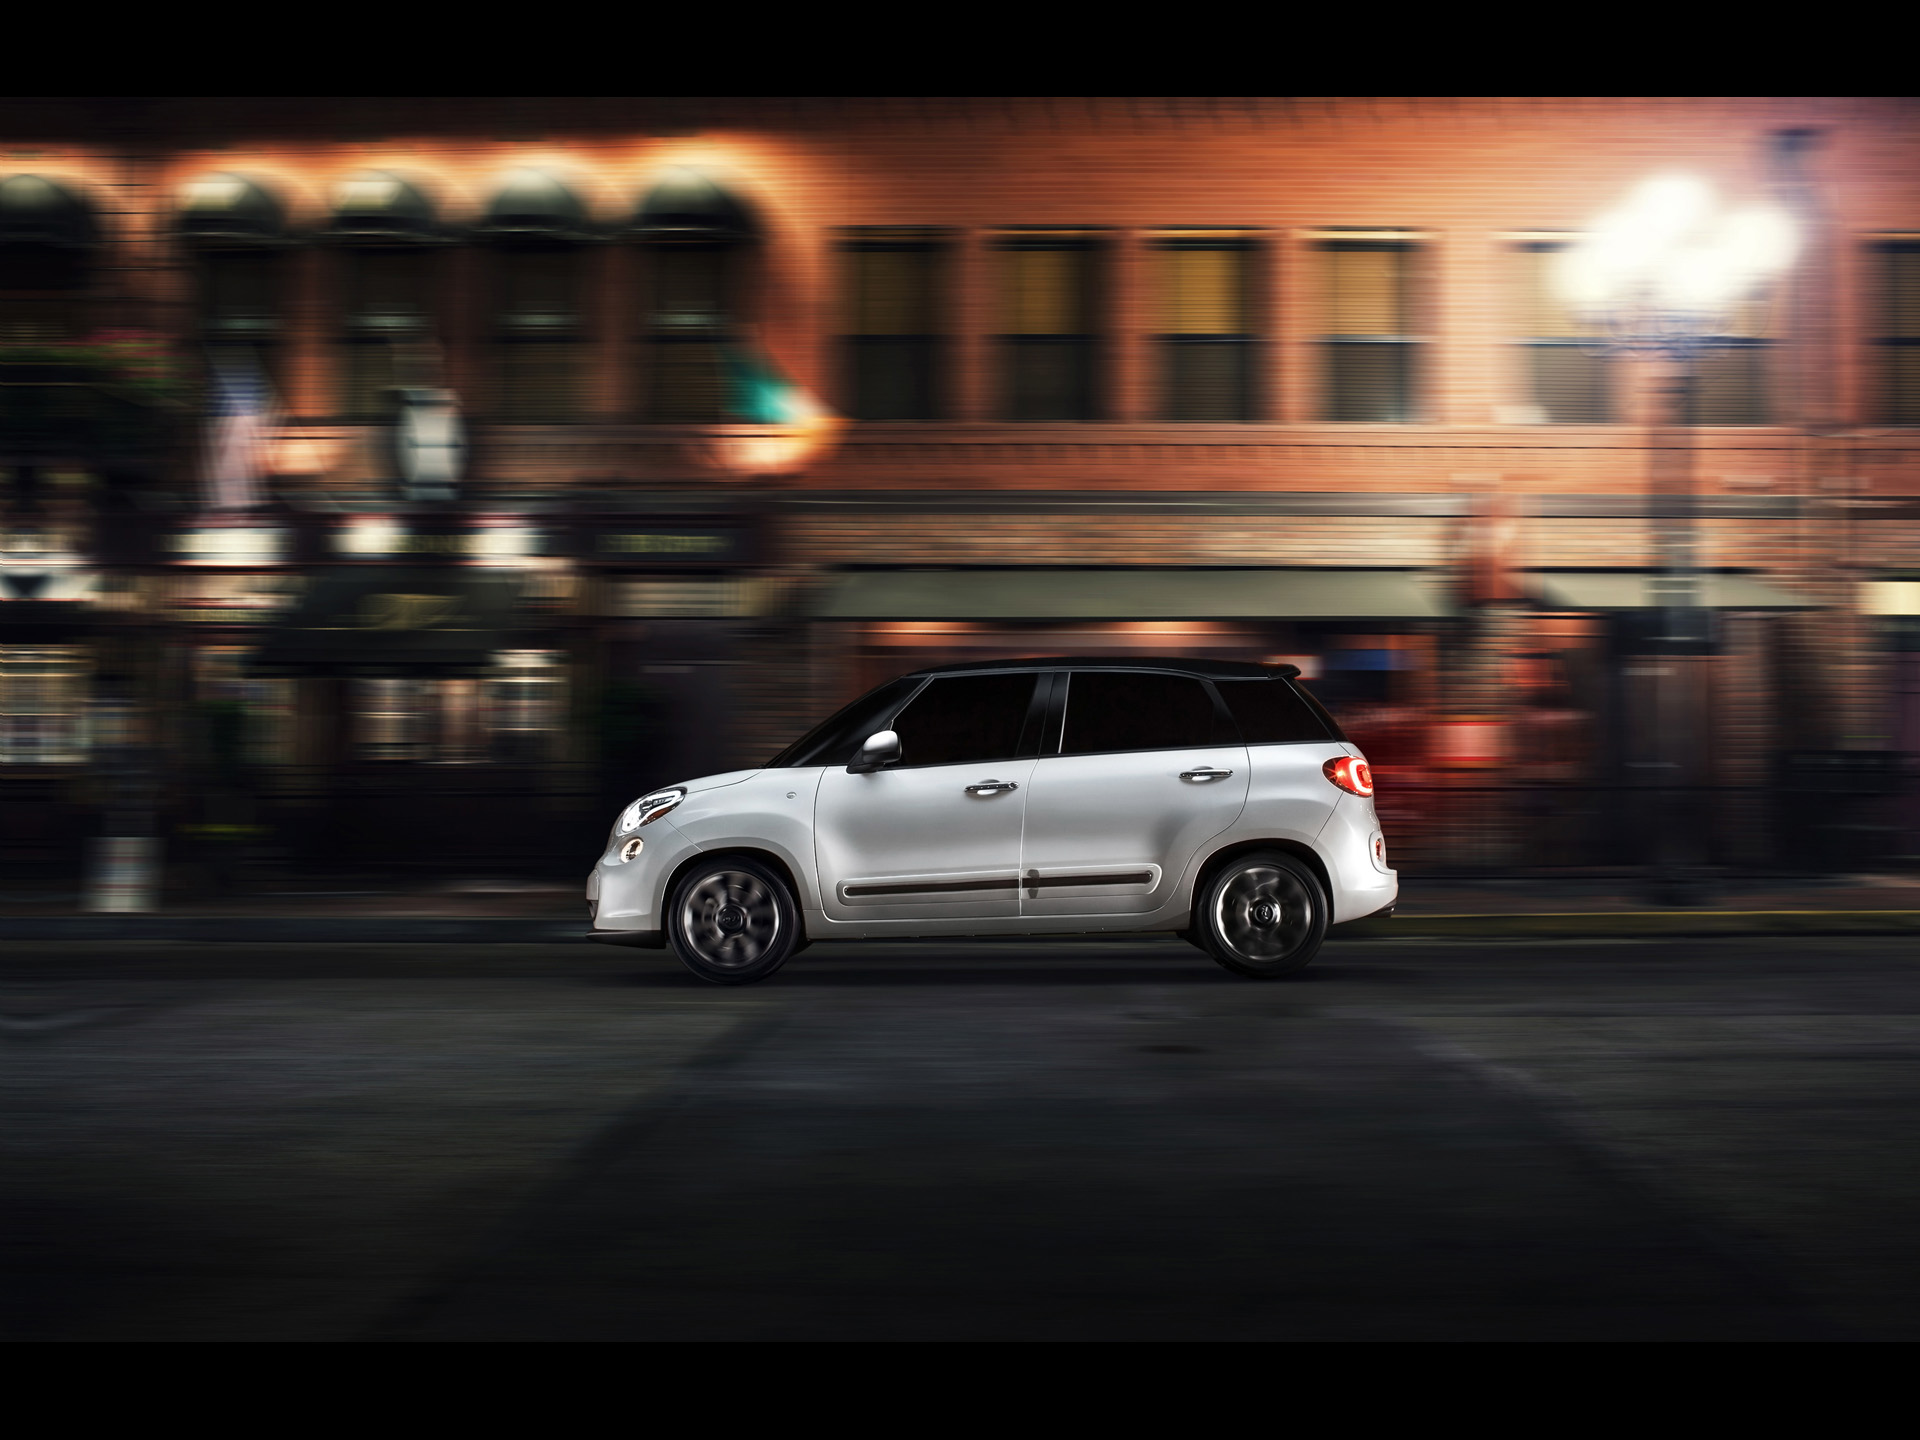 2014 Fiat 500l Motion Side Night Wallpapers 2014 Fiat